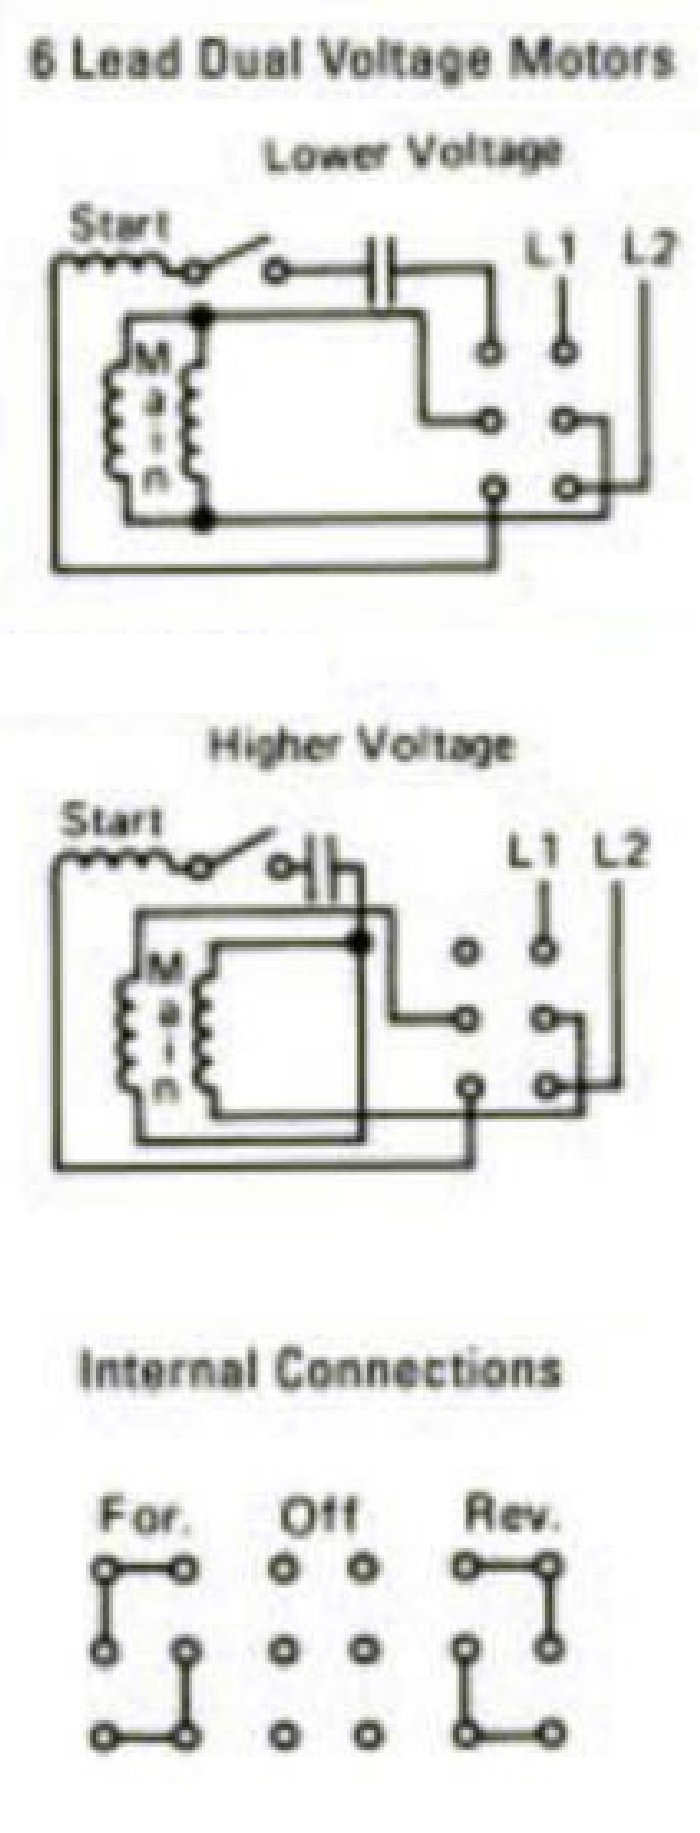 Wiring A Switch For 220 Volts